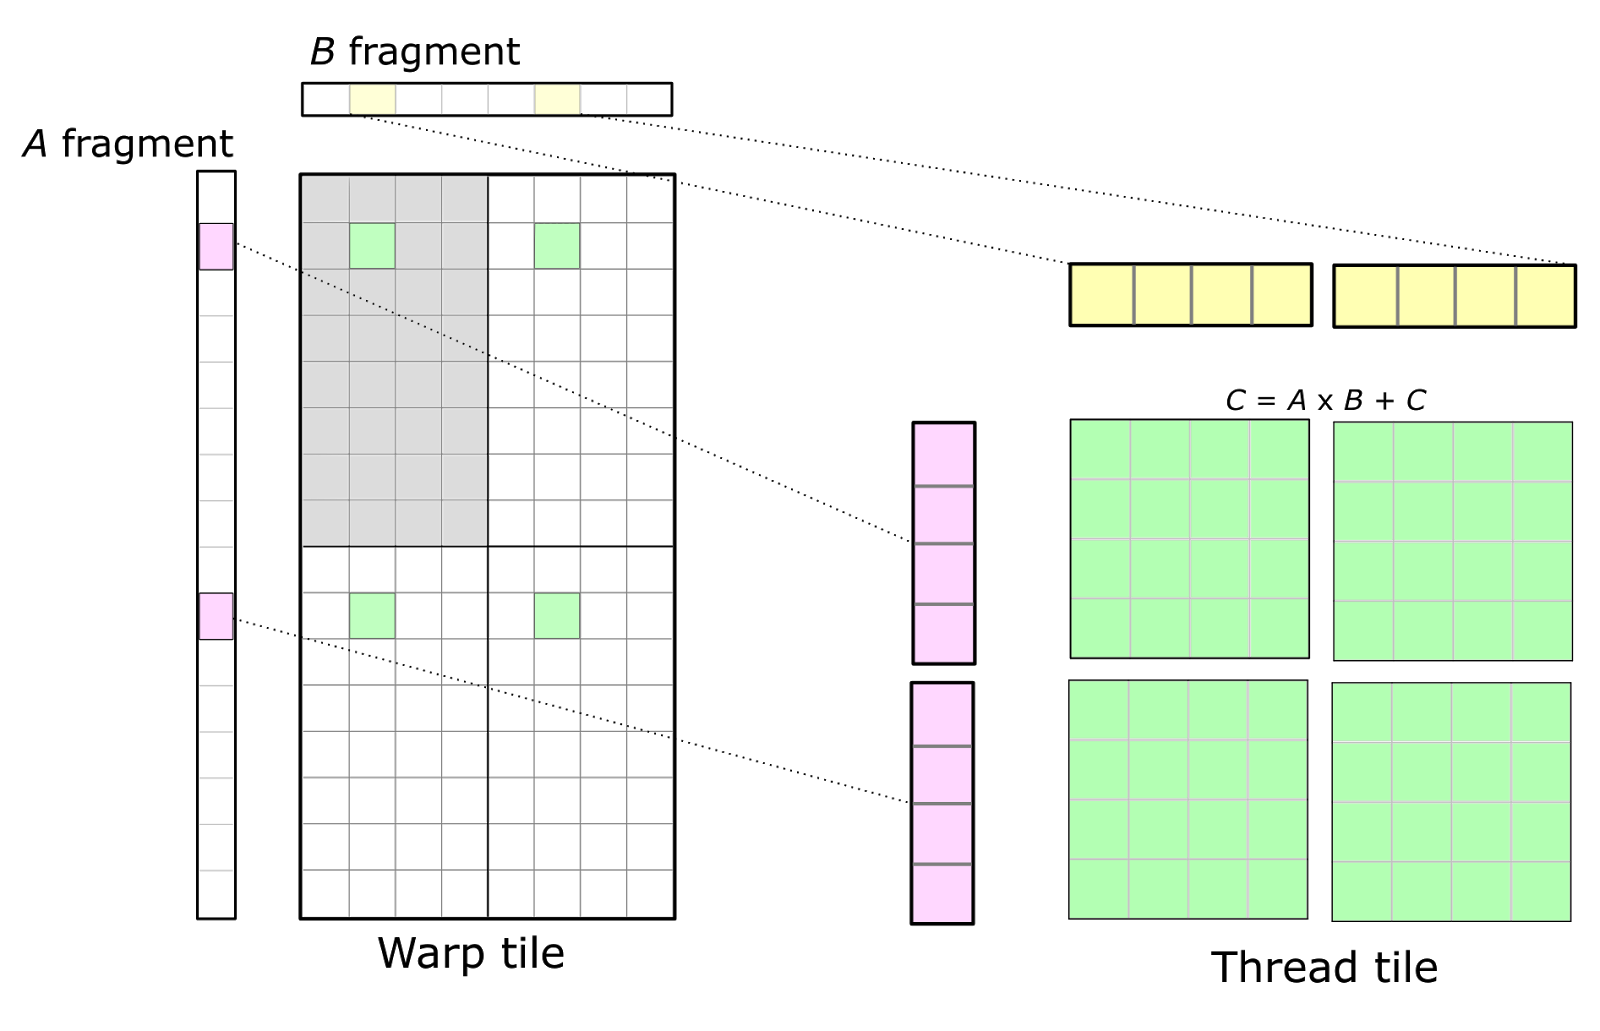 Figure 5. An individual thread (right) participates in a warp-level matrix product (left) by computing an outer product of a fragment of A and a fragment of B held in registers. The warp's accumulators in green are partitioned among the threads within the warp and typically arranged as a set of 2D tiles.